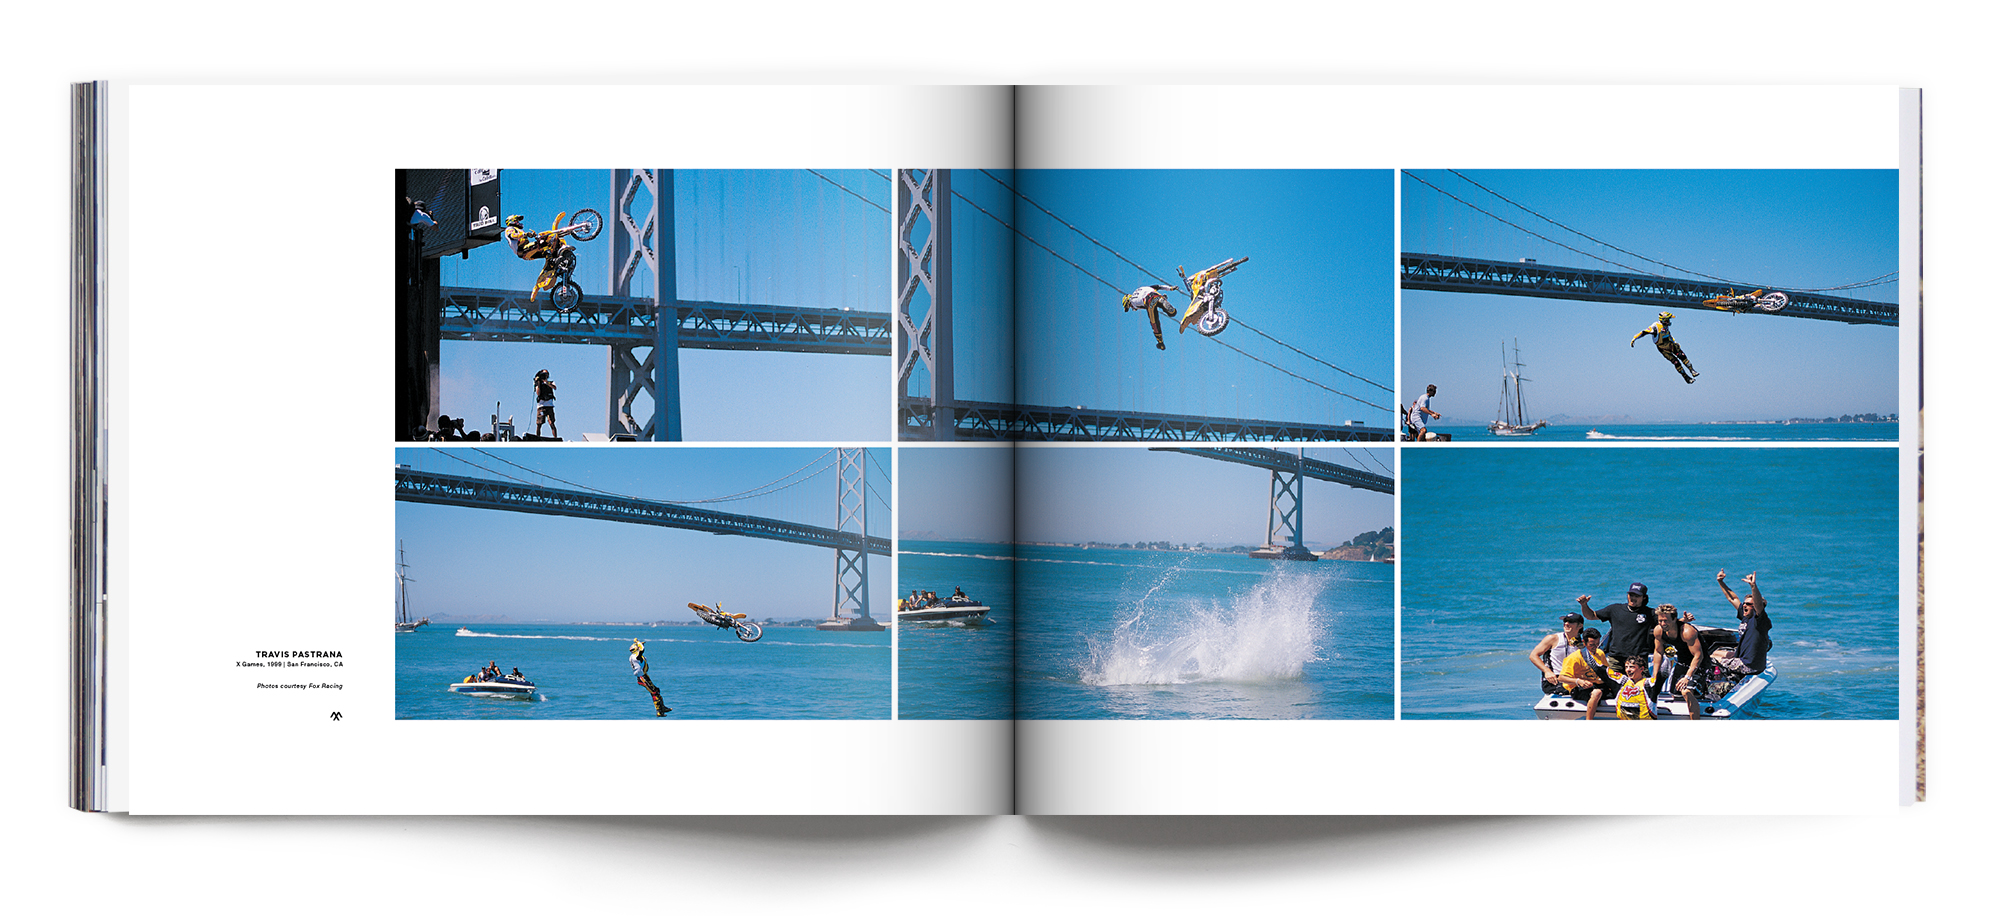 Travis Pastrana's jump into the bay, X Games 2000 | Photo spread featured in META Volume 004